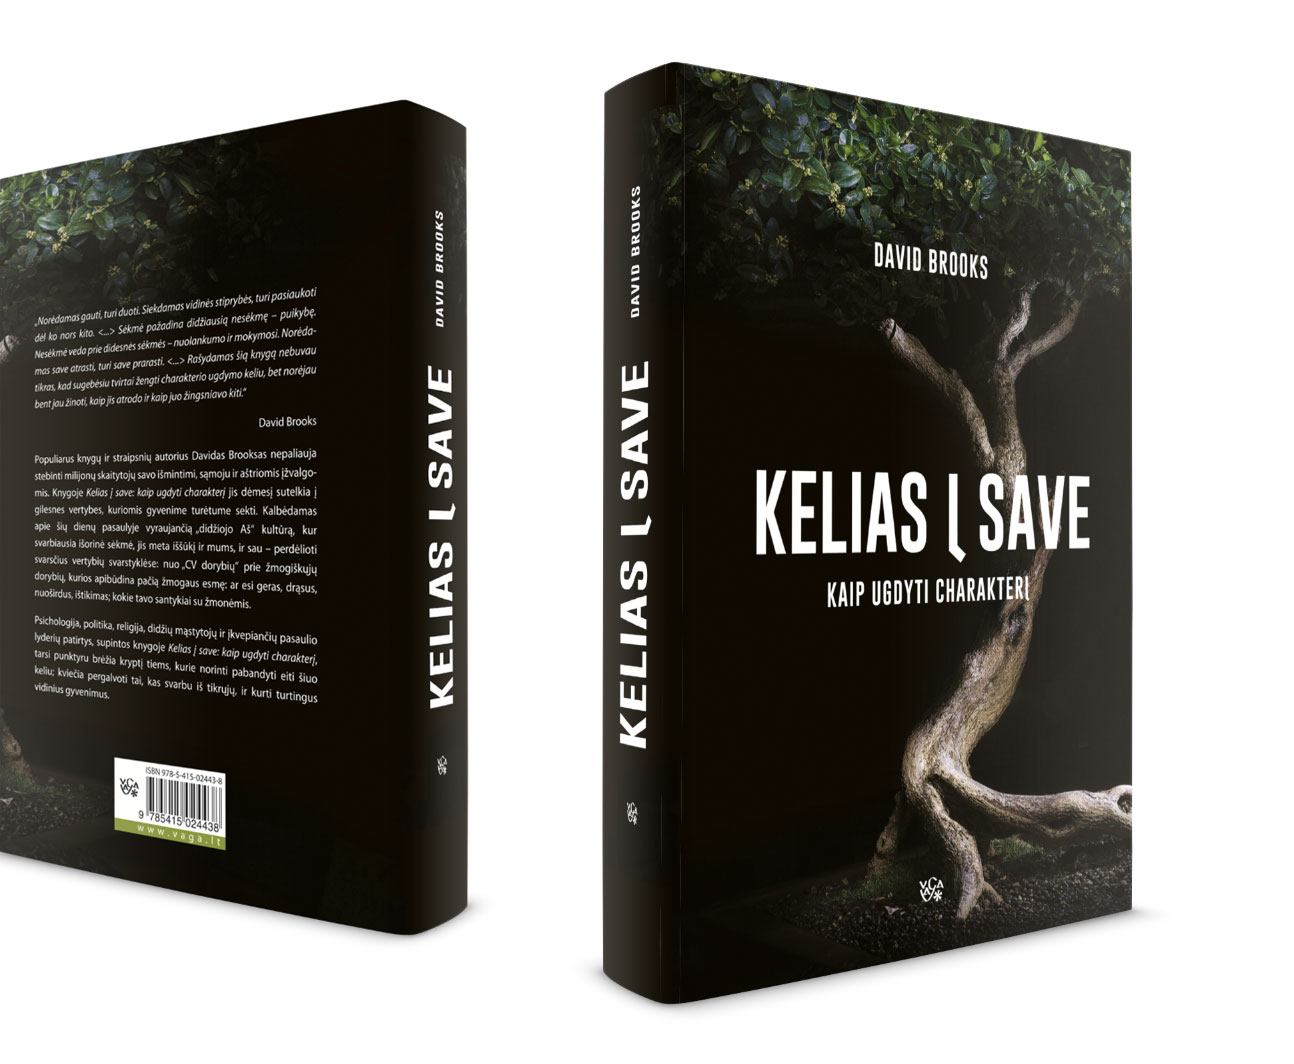 Kelias-i-save_Milena-grigaitiene_artist_freelancer_Book-design